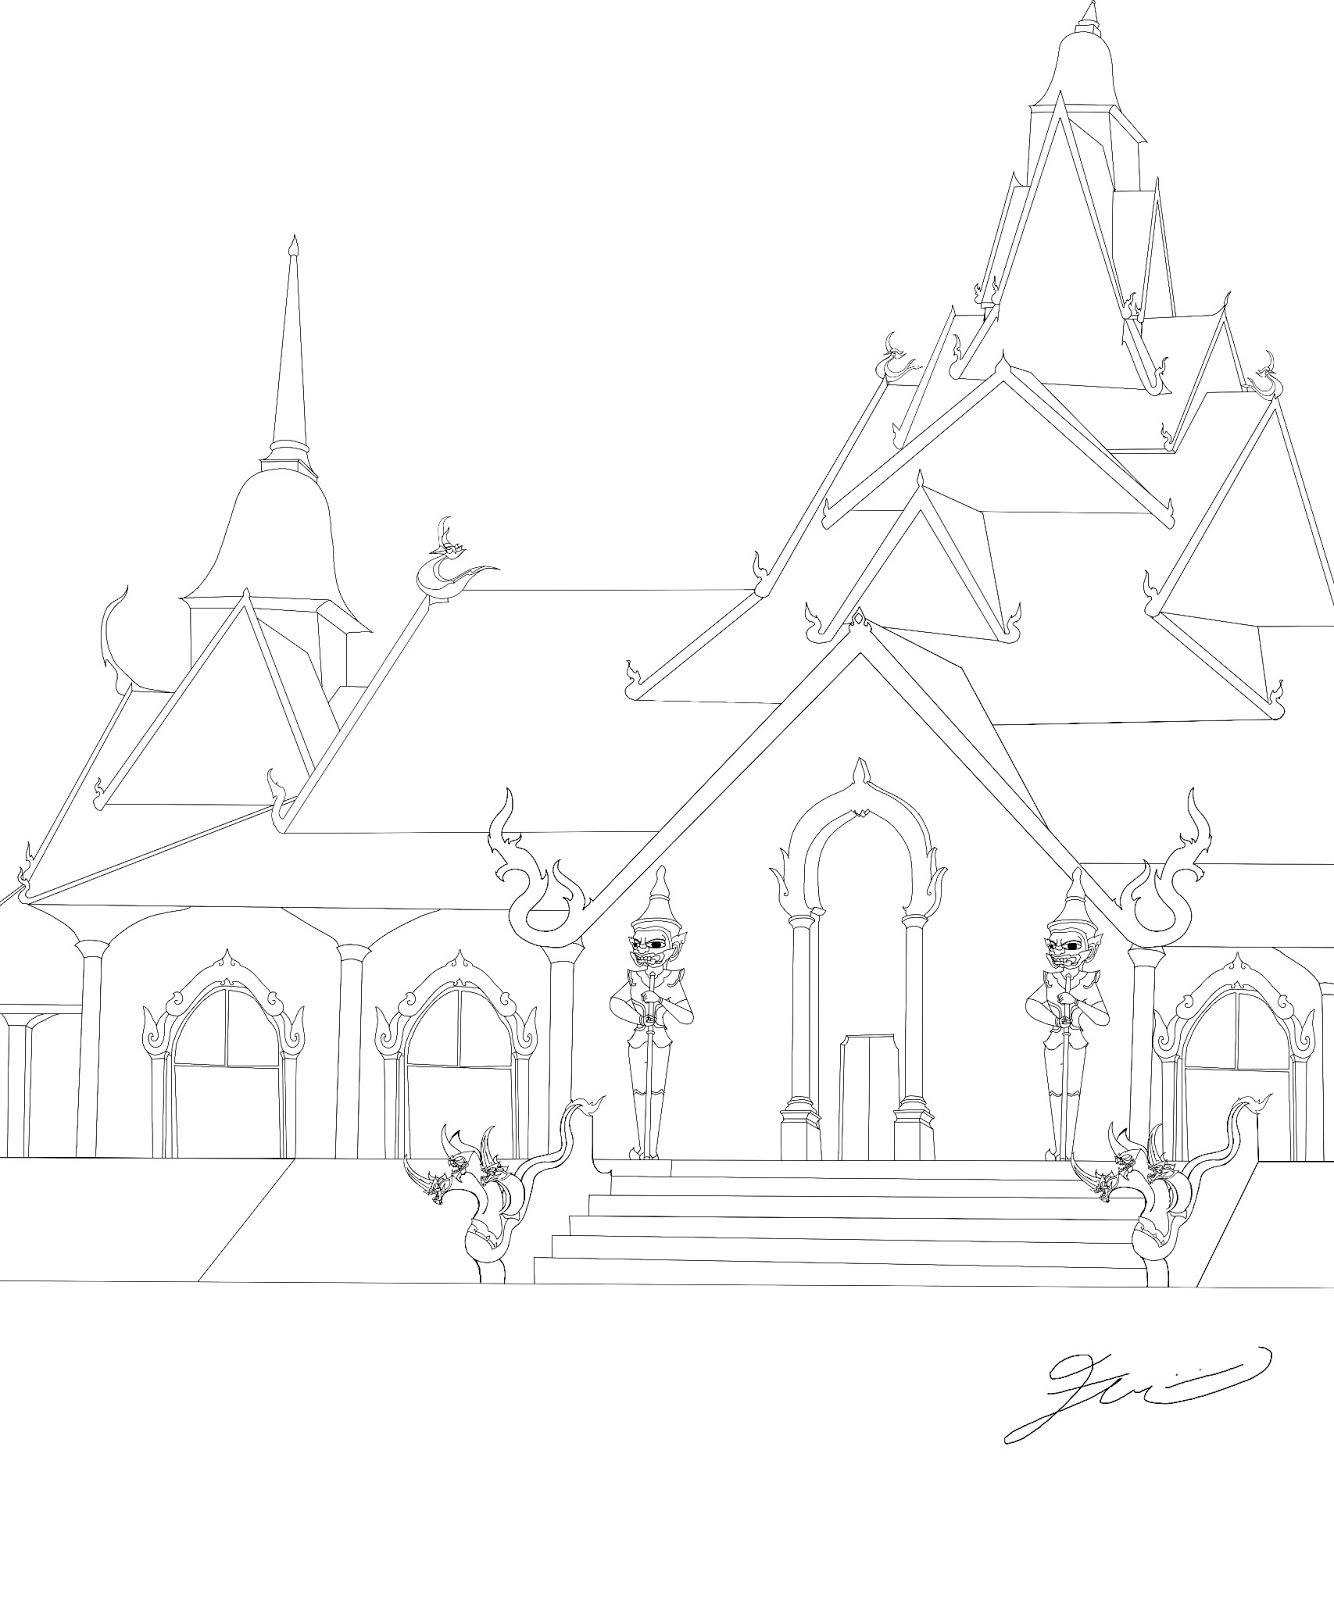 1334x1600 My First Improved Lineart Drawing Of The Singapore Sukhothai